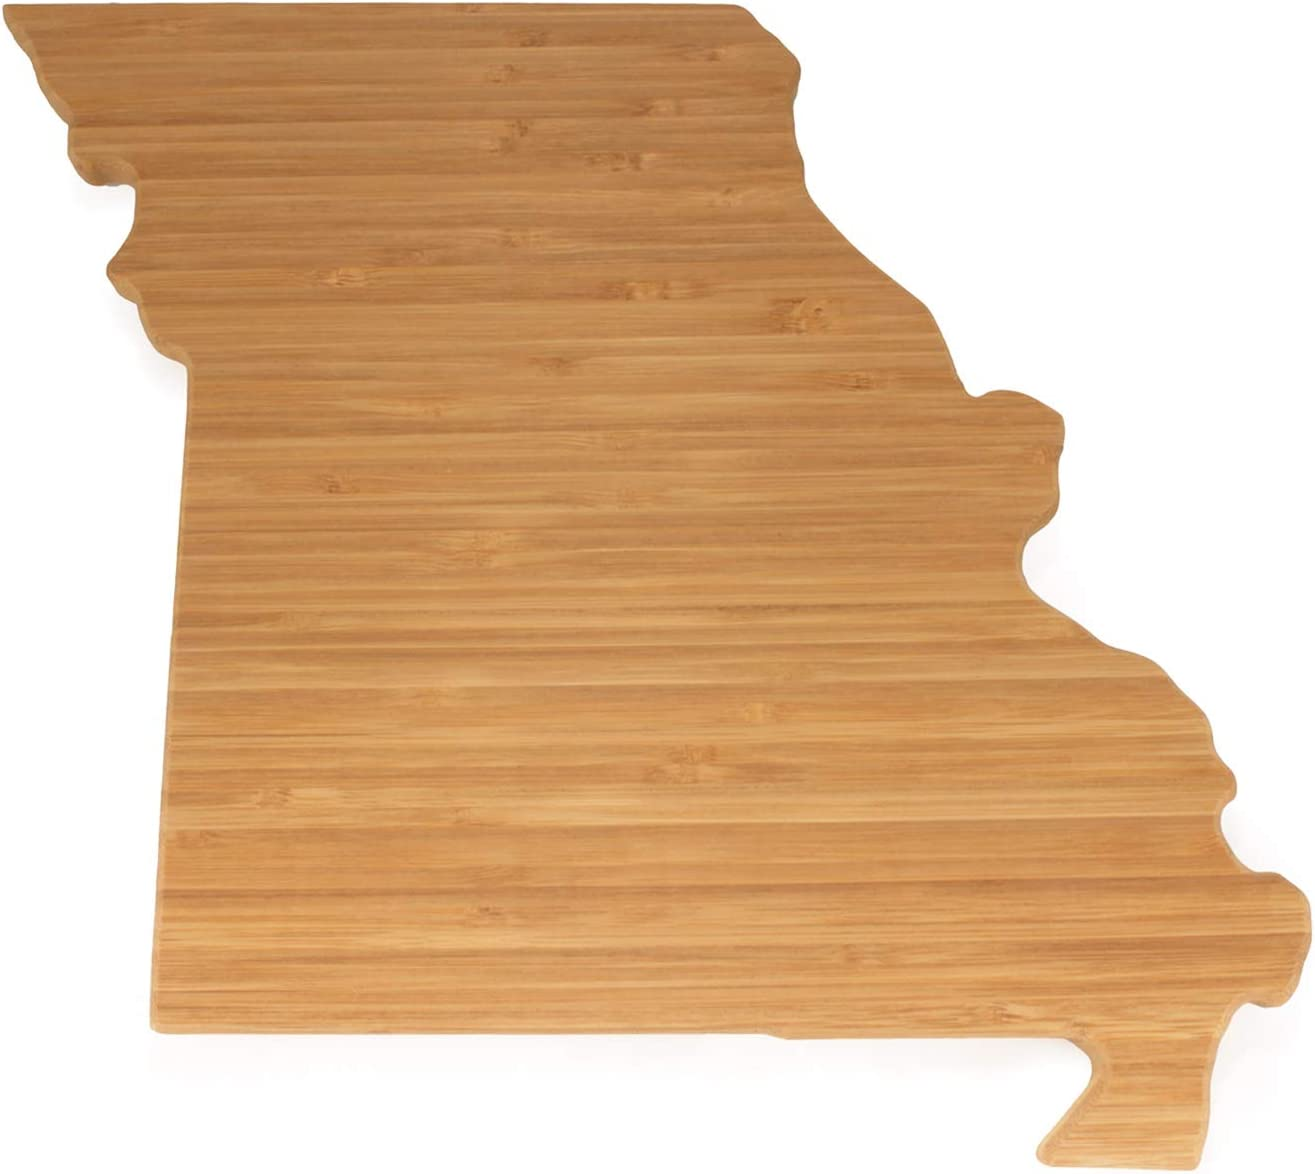 BambooMN Missouri Silhouette Bamboo Serving and Cutting Board - 1 Unit - 12